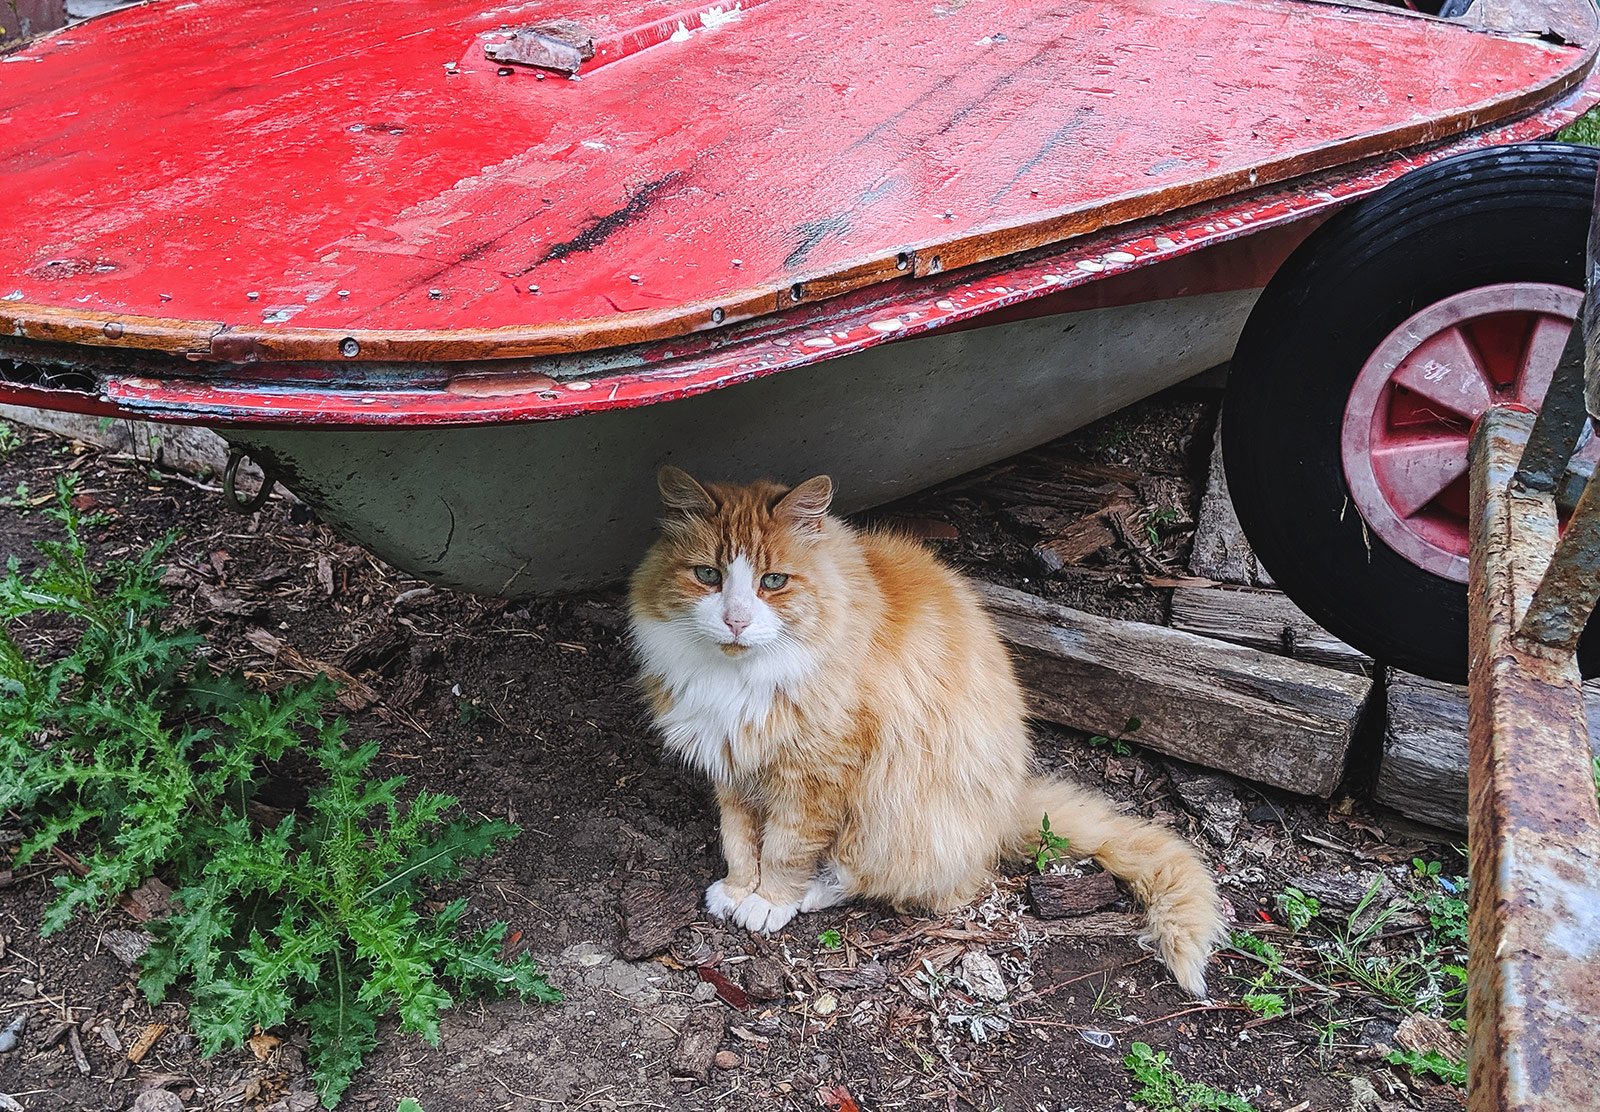 Cat sat under red boat